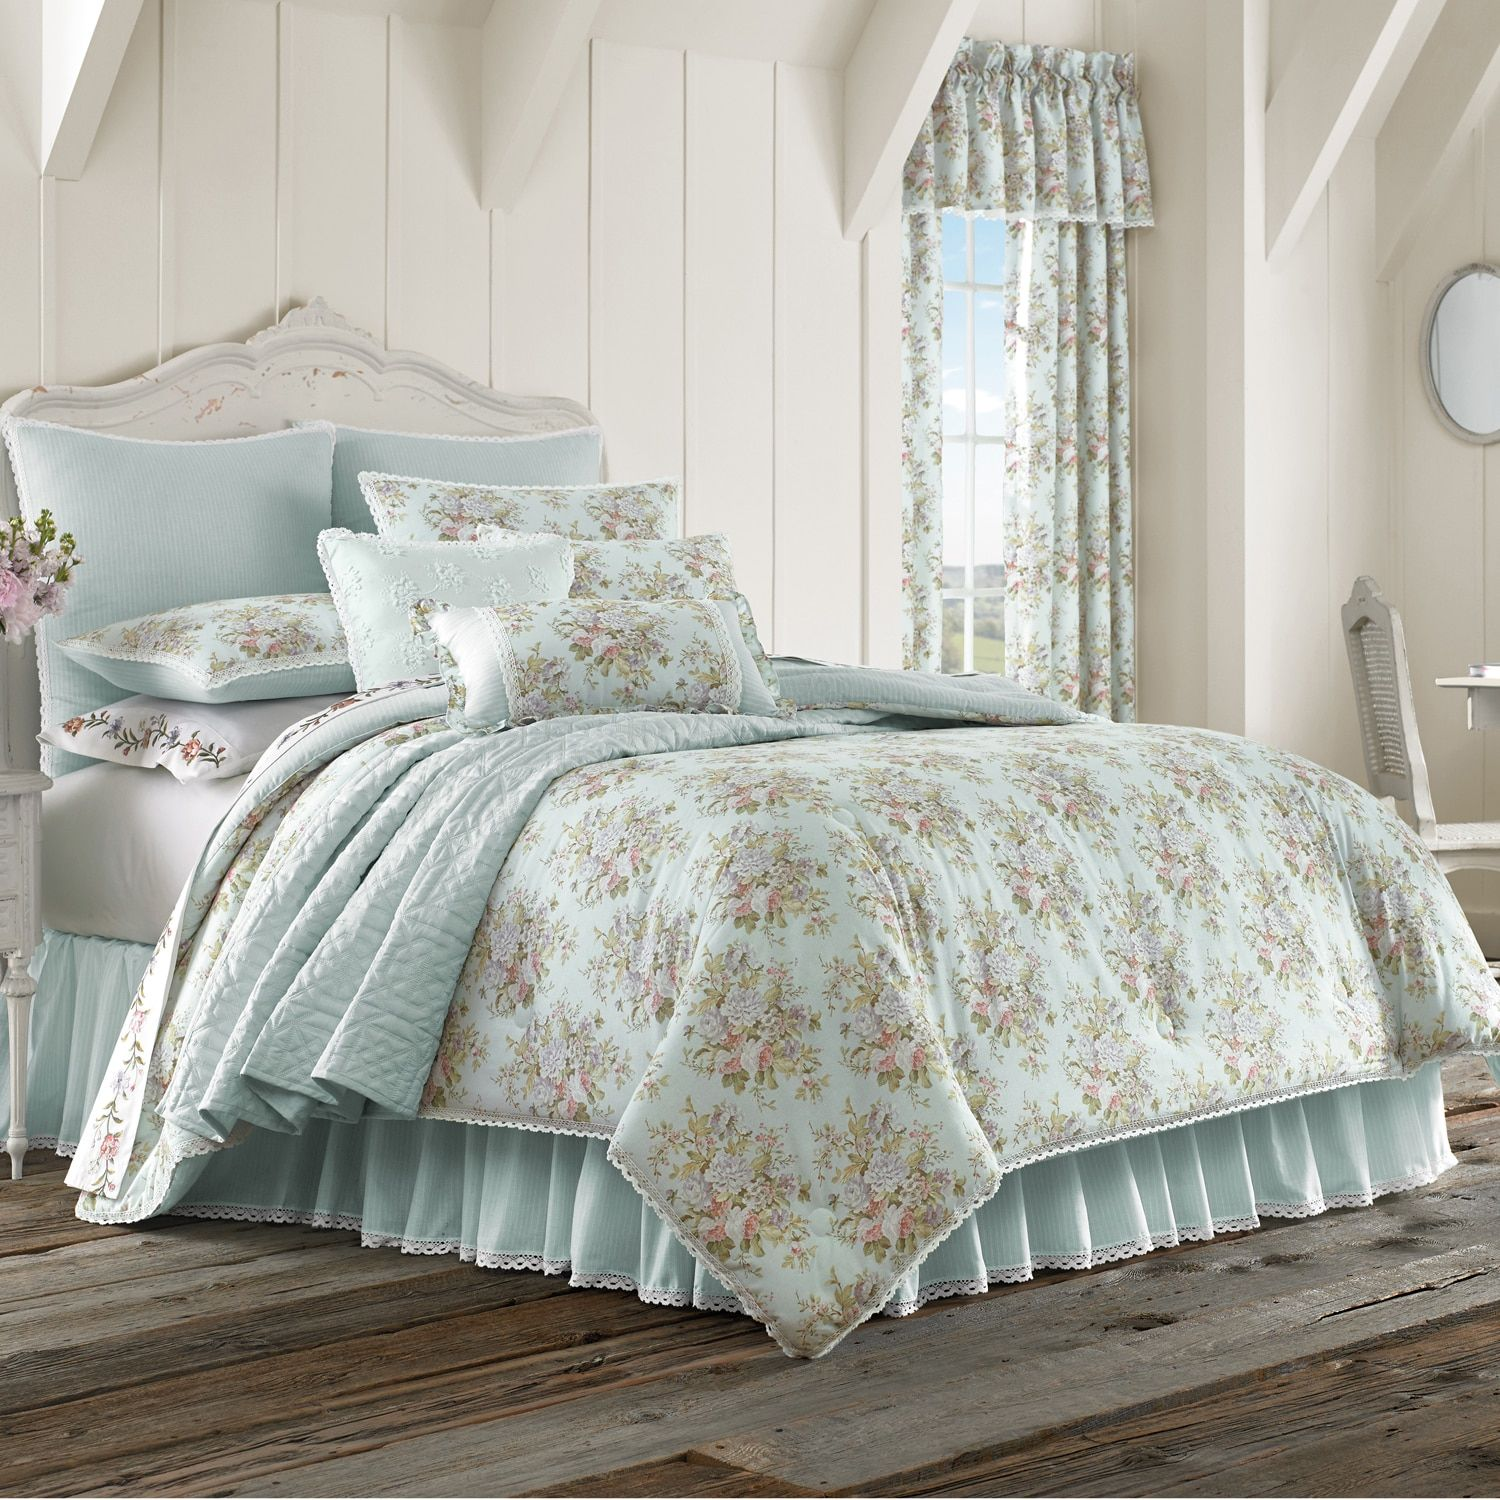 Hilary California King Comforter Set In 2020 Comforter Sets Waverly Bedding Full Comforter Sets